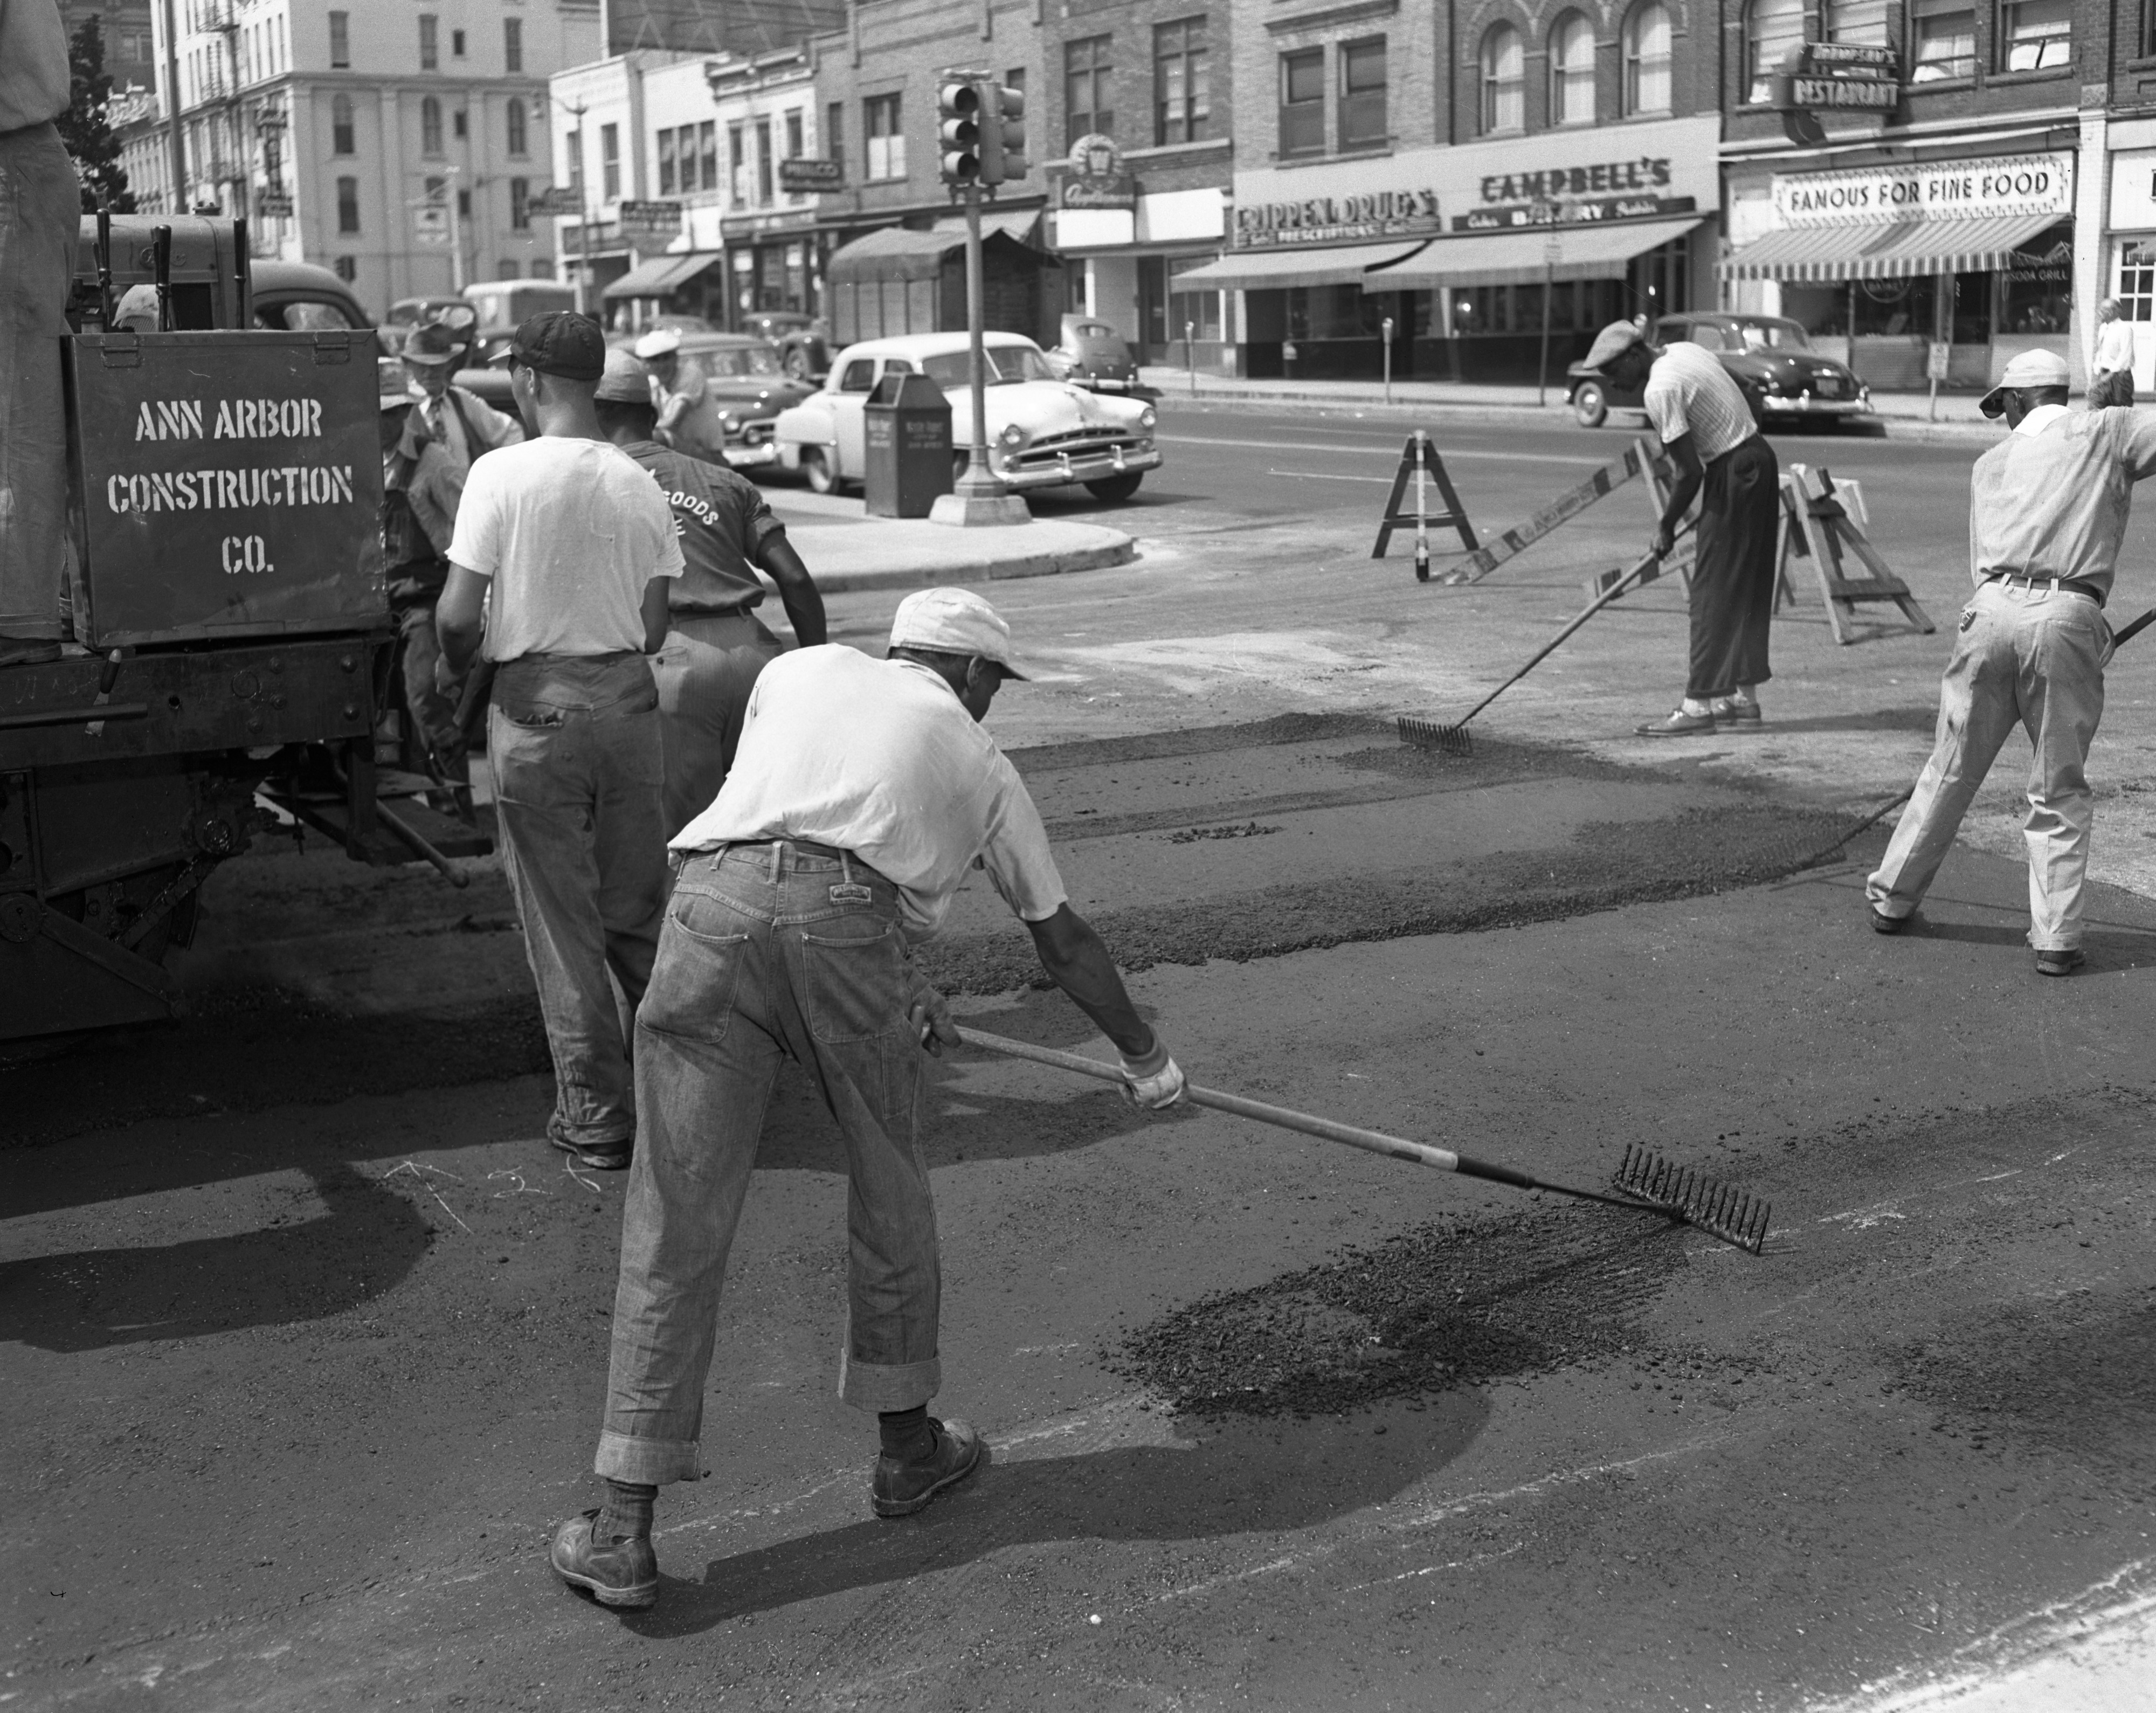 Street Repair, Catherine at Main St., June 1952 image